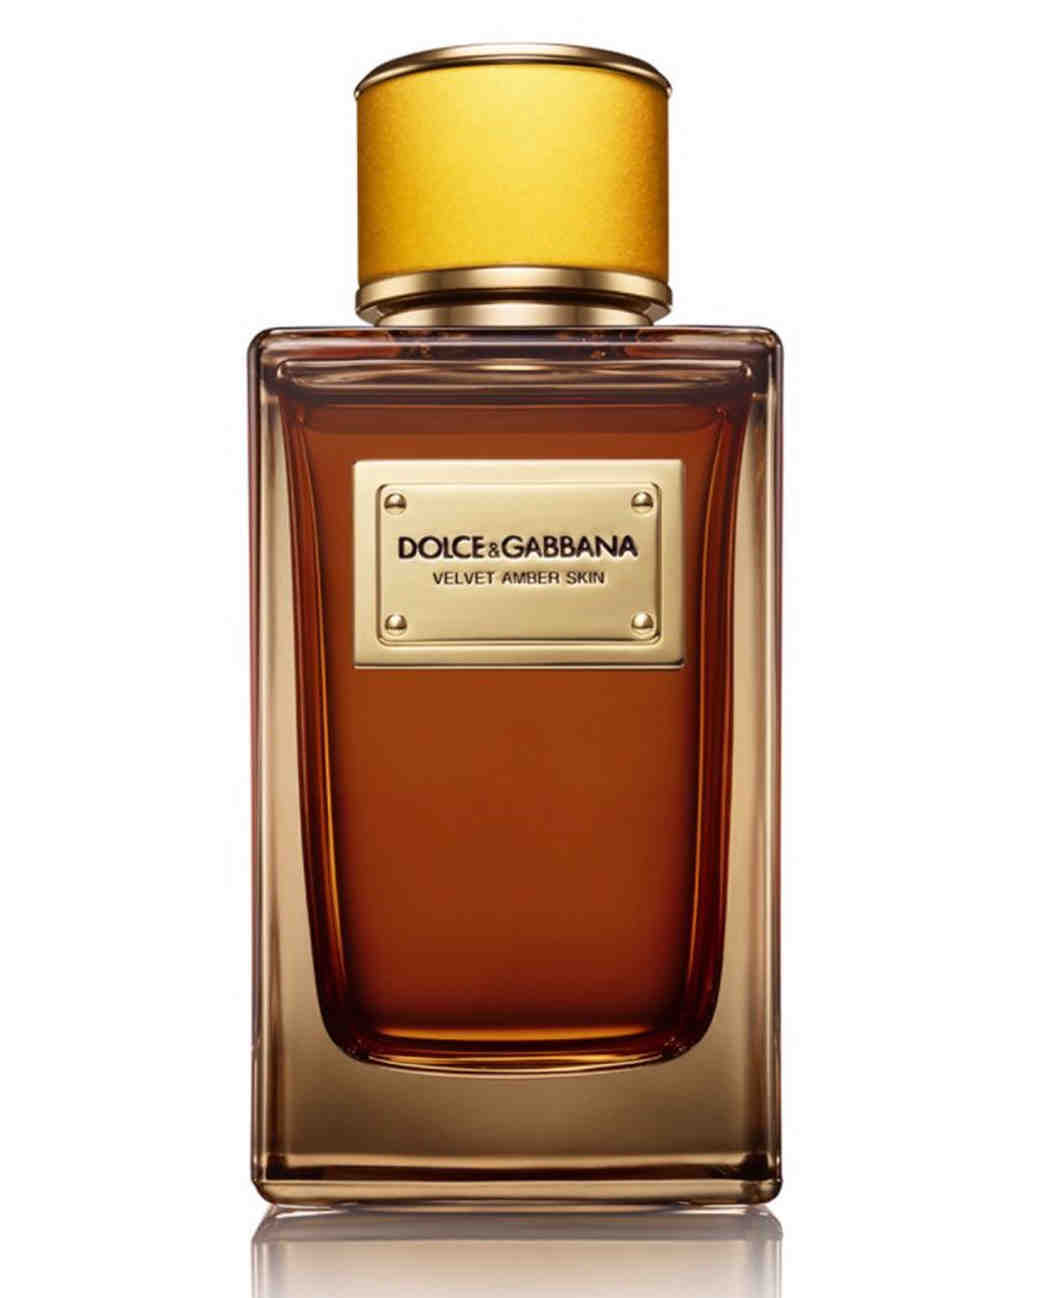 dolce and gabbana cologne